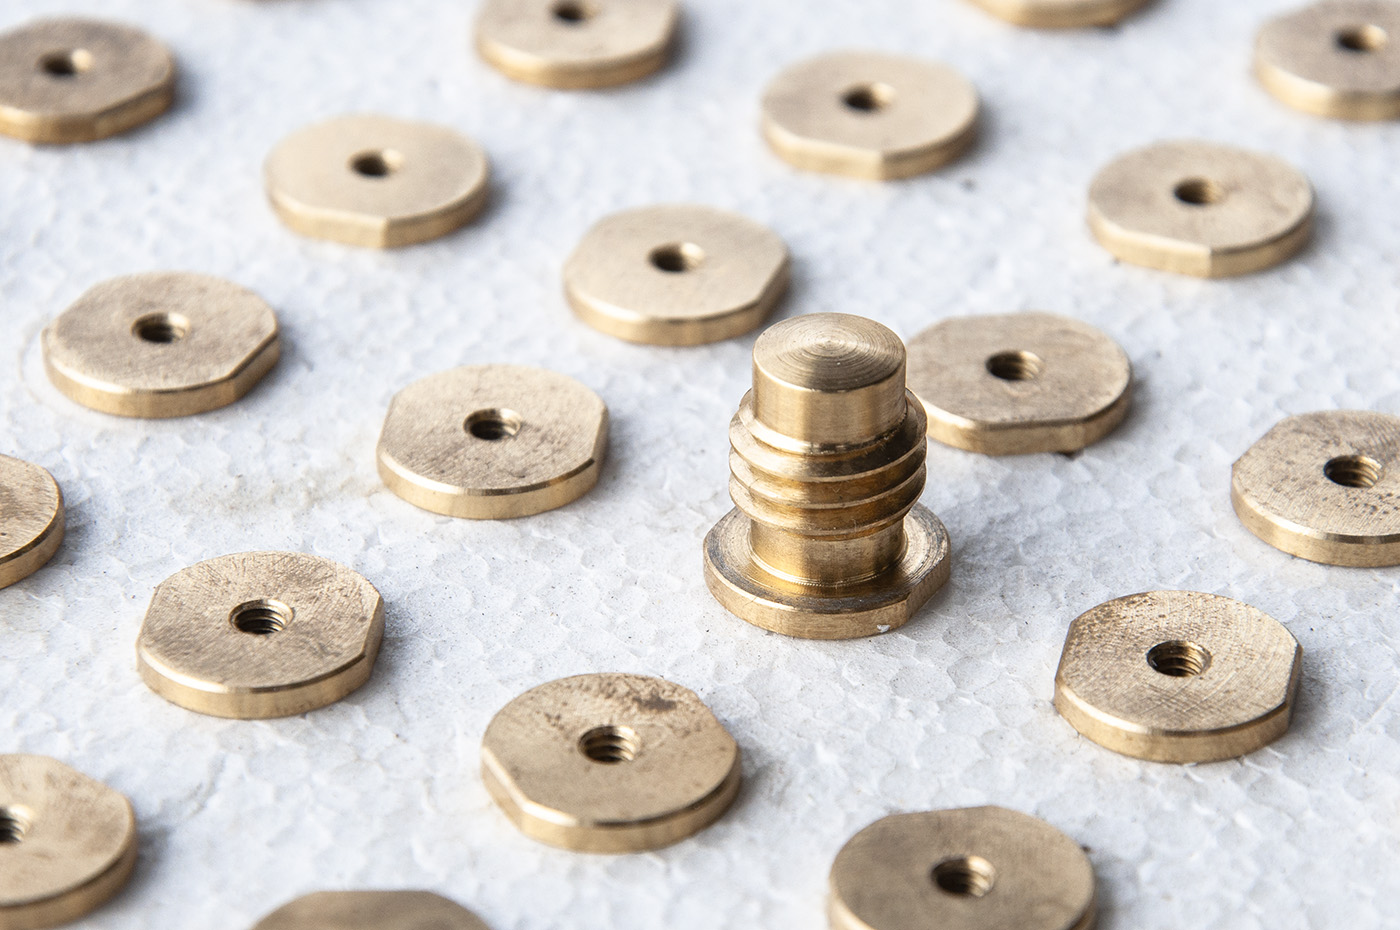 tektonics linear tube audio brass capacitive buttons.jpg